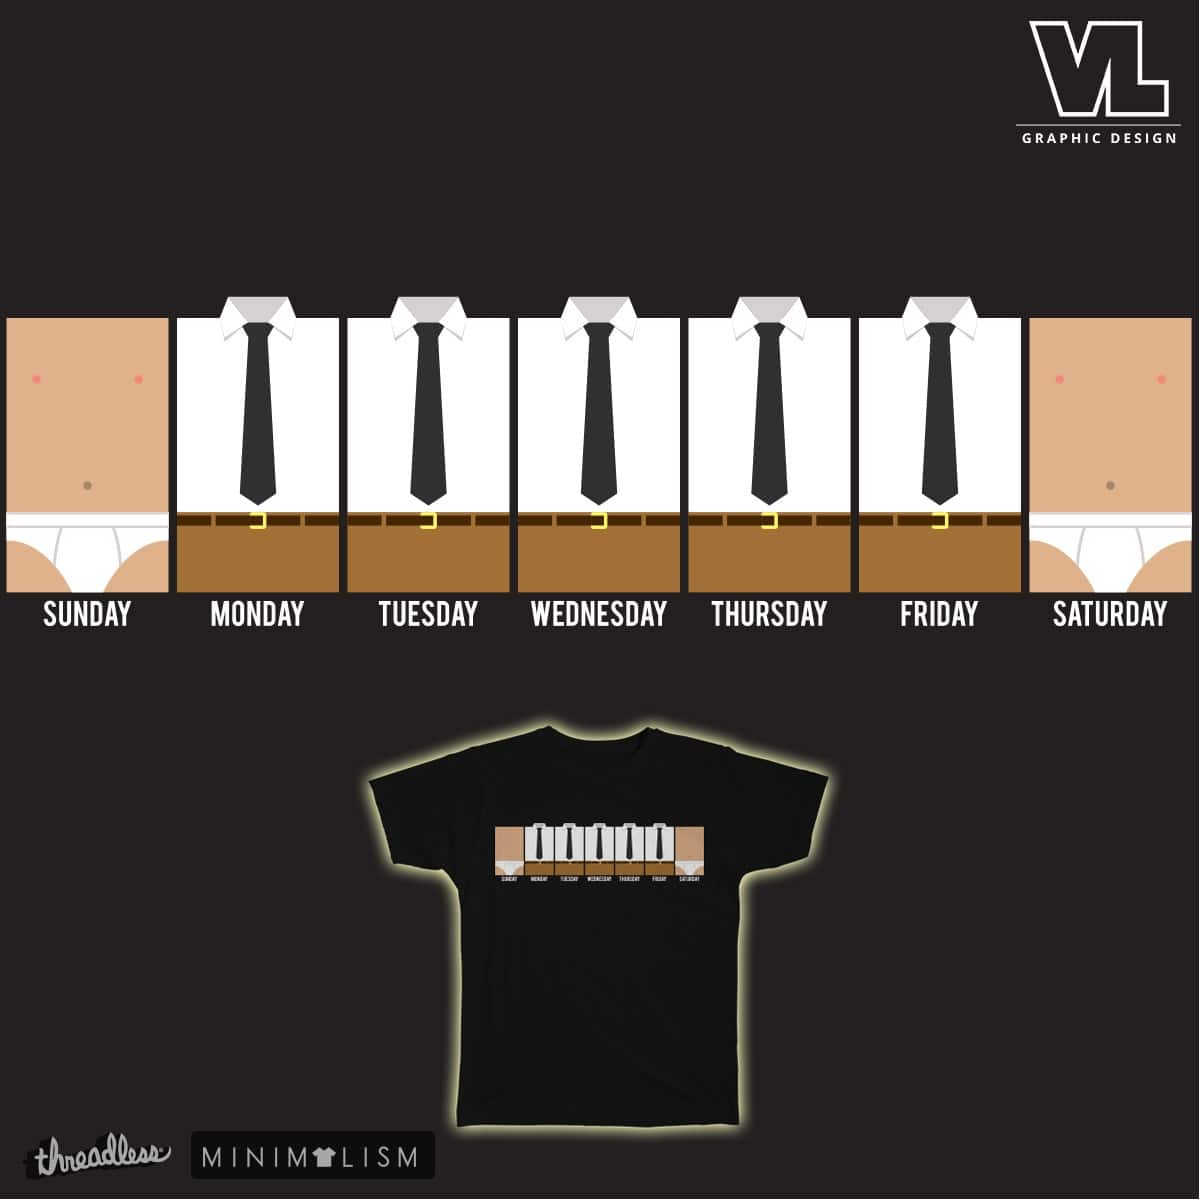 Man Week by vectored_life on Threadless